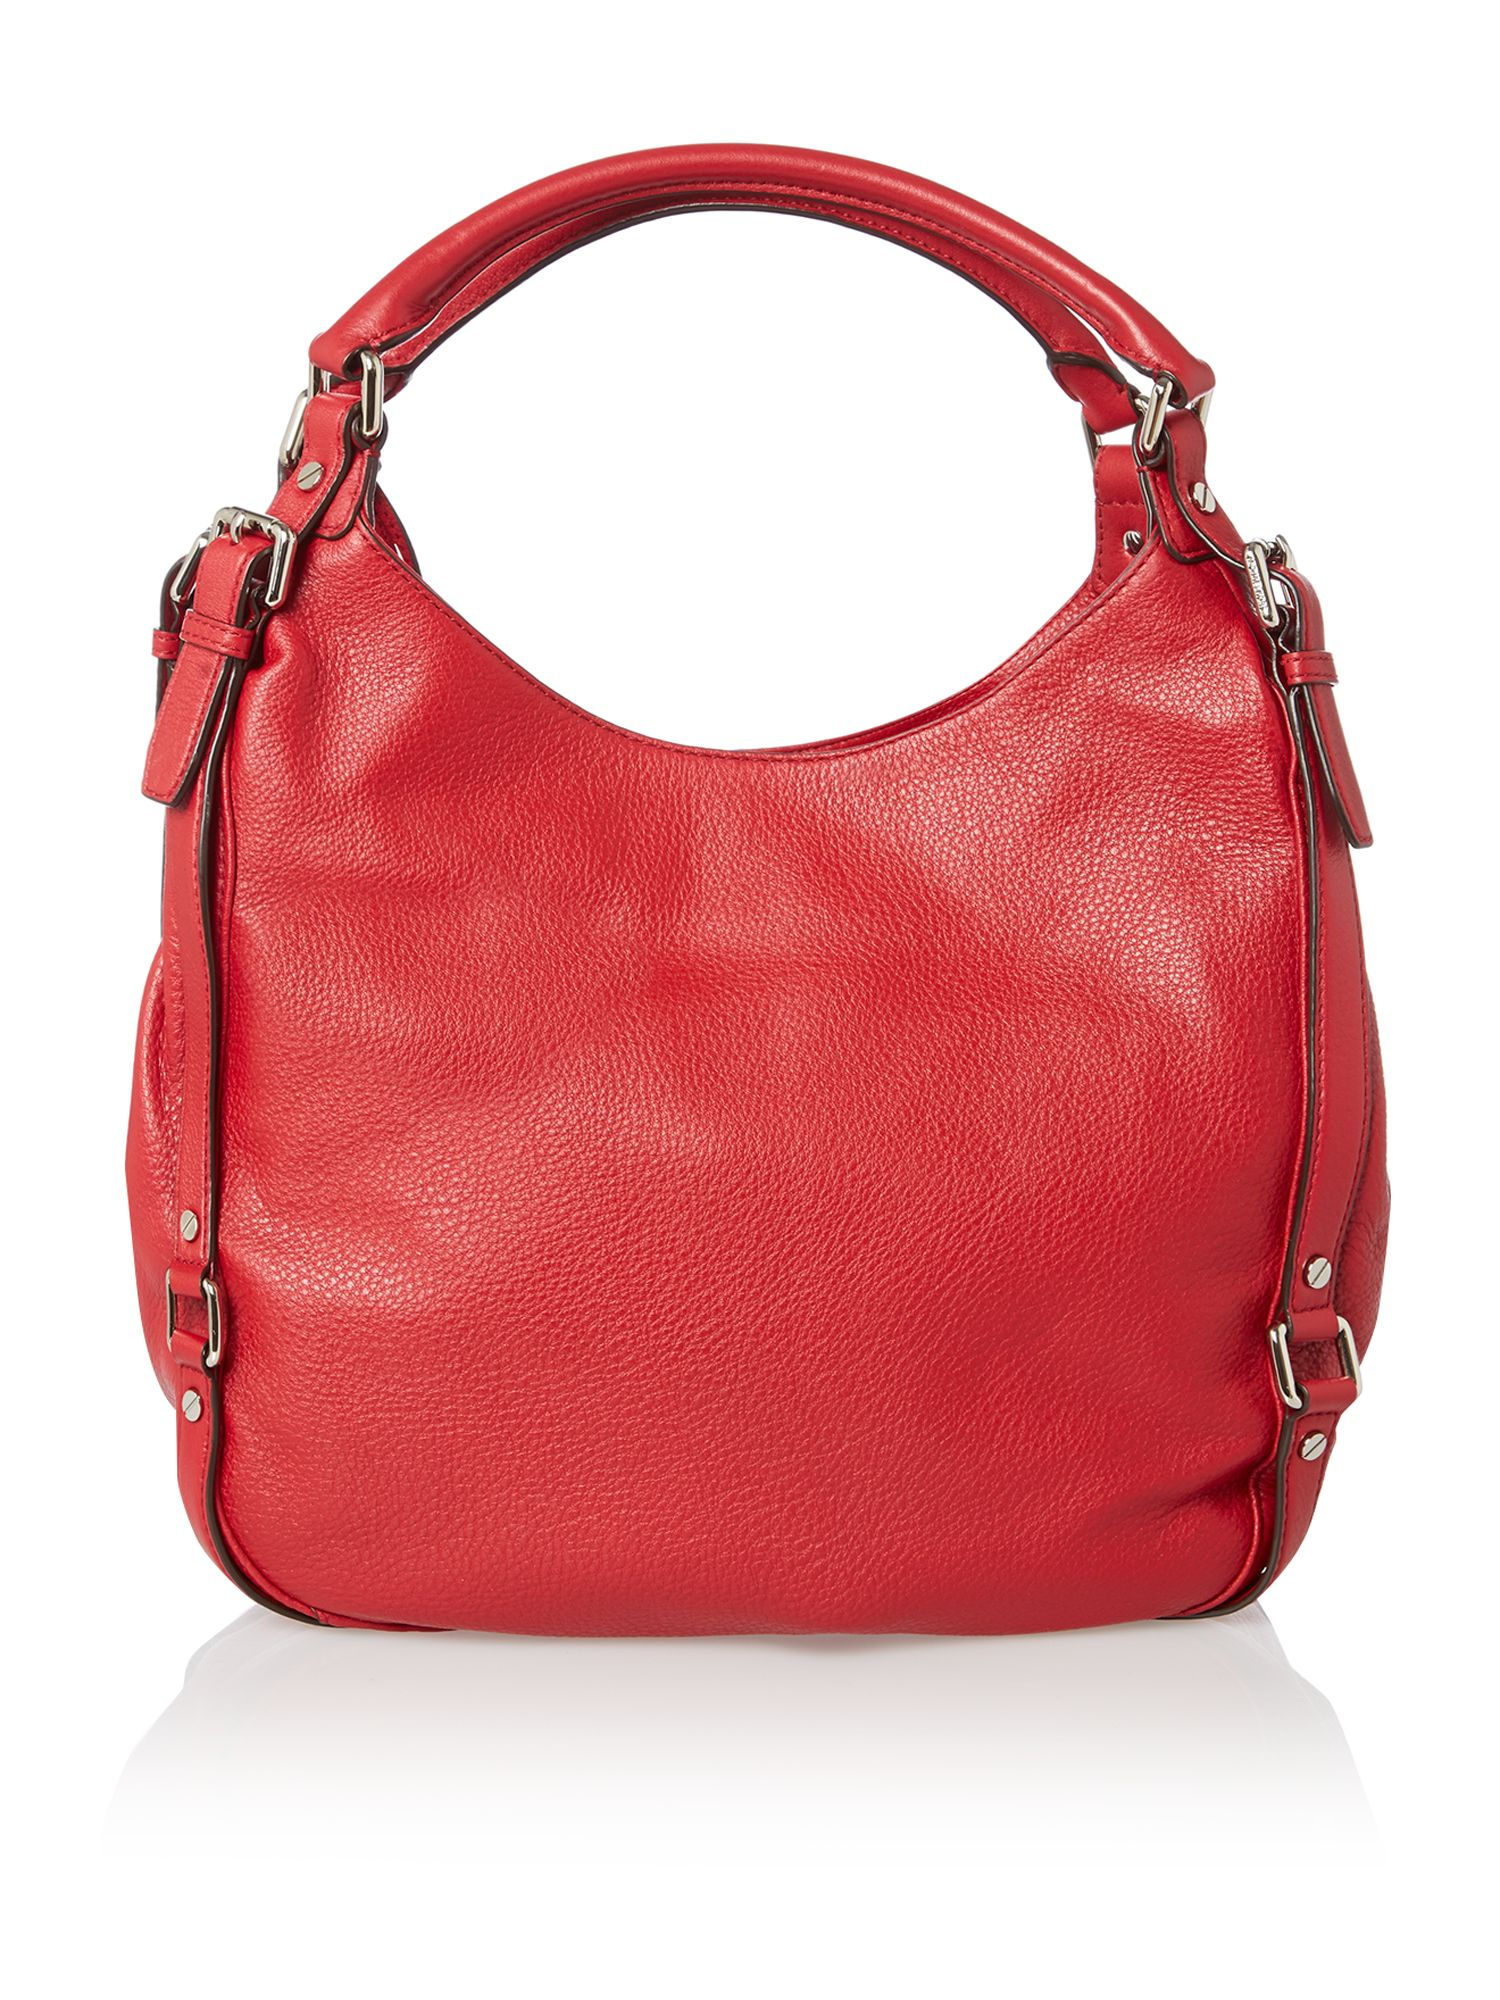 Bedford red hobo bag